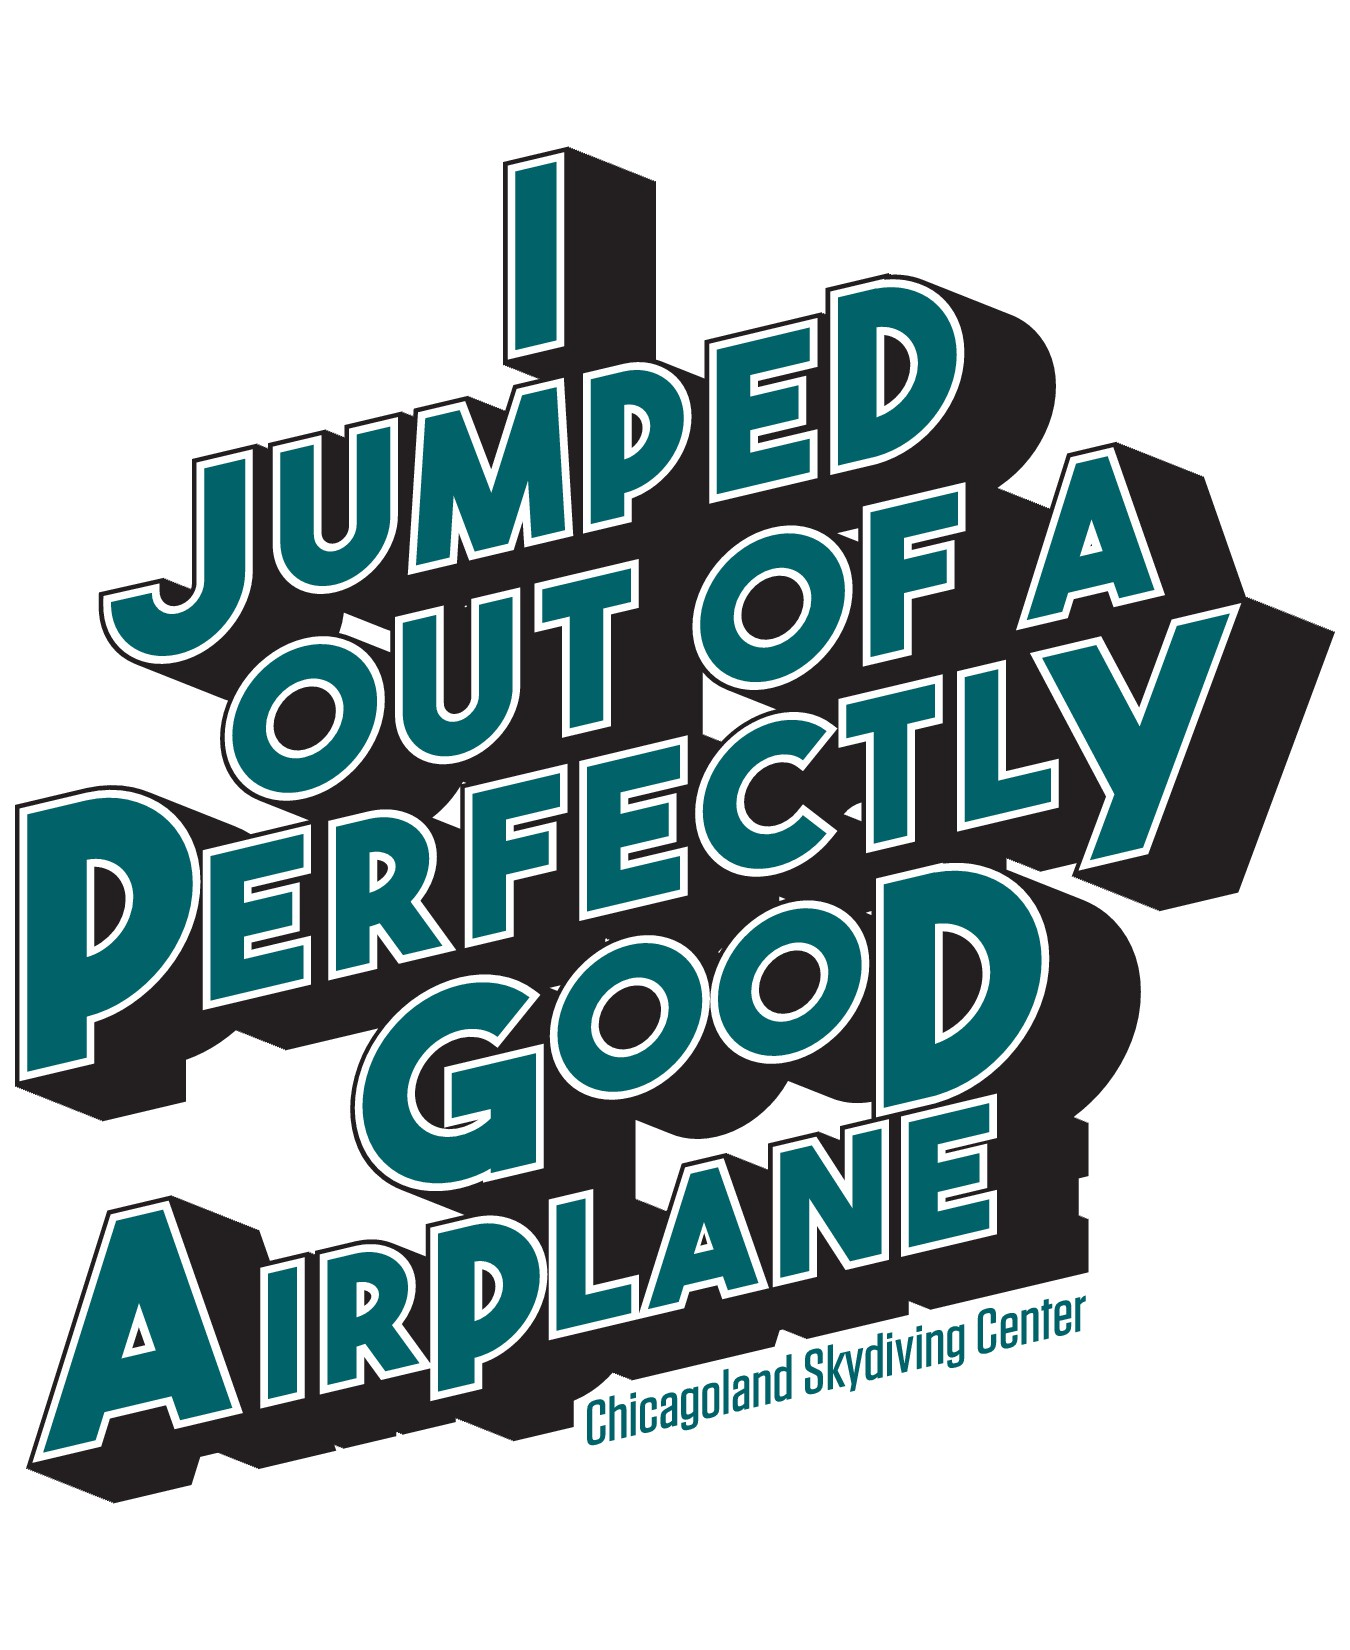 I Jumped Out of a Perfectly Good Airplane T Shirt Design